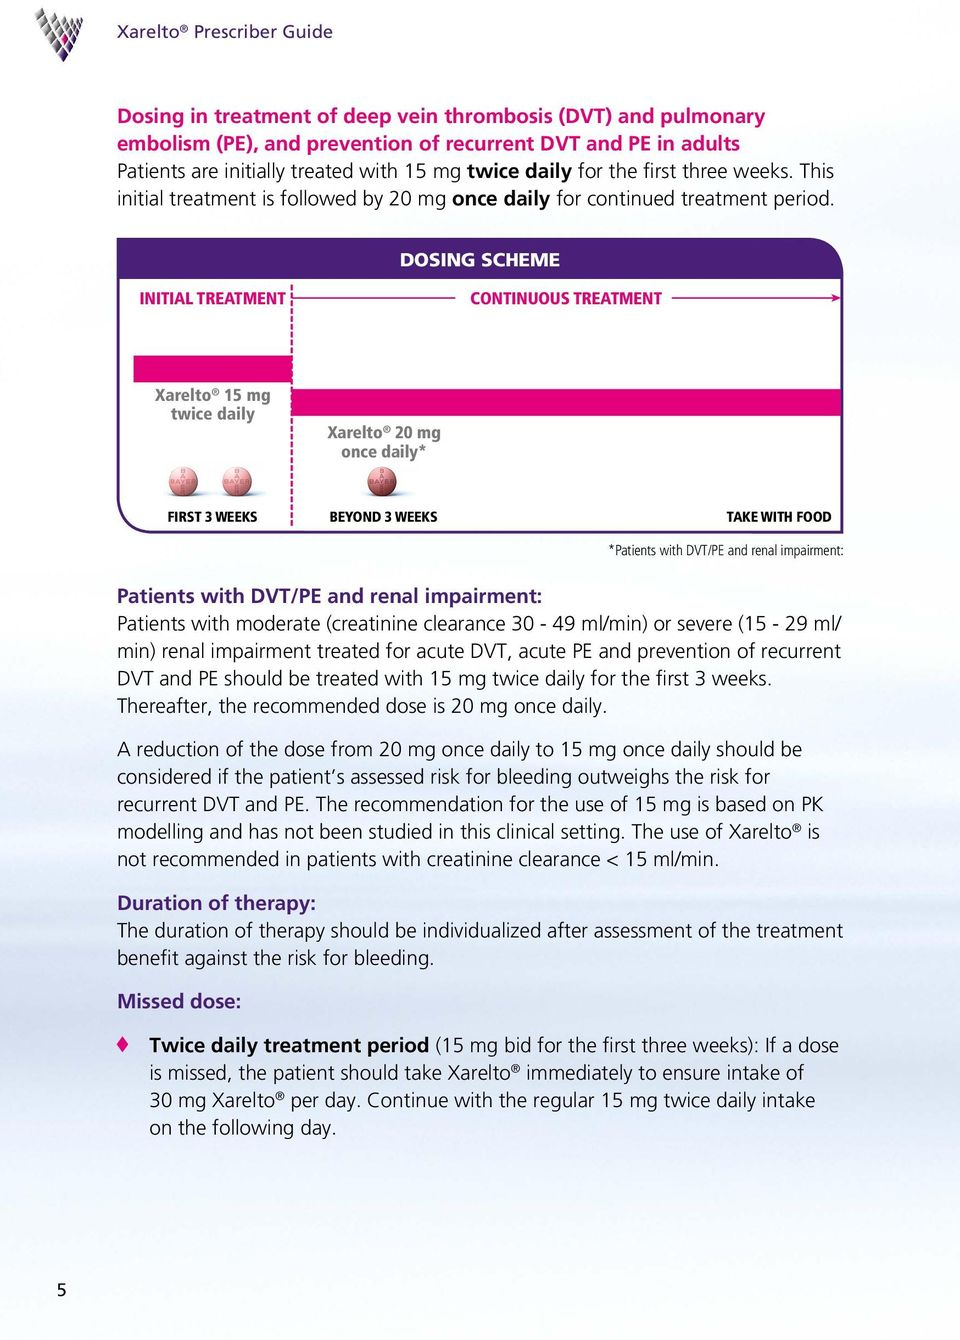 DOSING SCHEME Initial TREATMENT CONTINUOUS TREATMENT Xarelto 15 mg twice daily Xarelto 20 mg once daily* FIRST 3 WEEKS BEYOND 3 WEEKS TAKE WITH FOOD *Patients with DVT/PE and renal impairment: